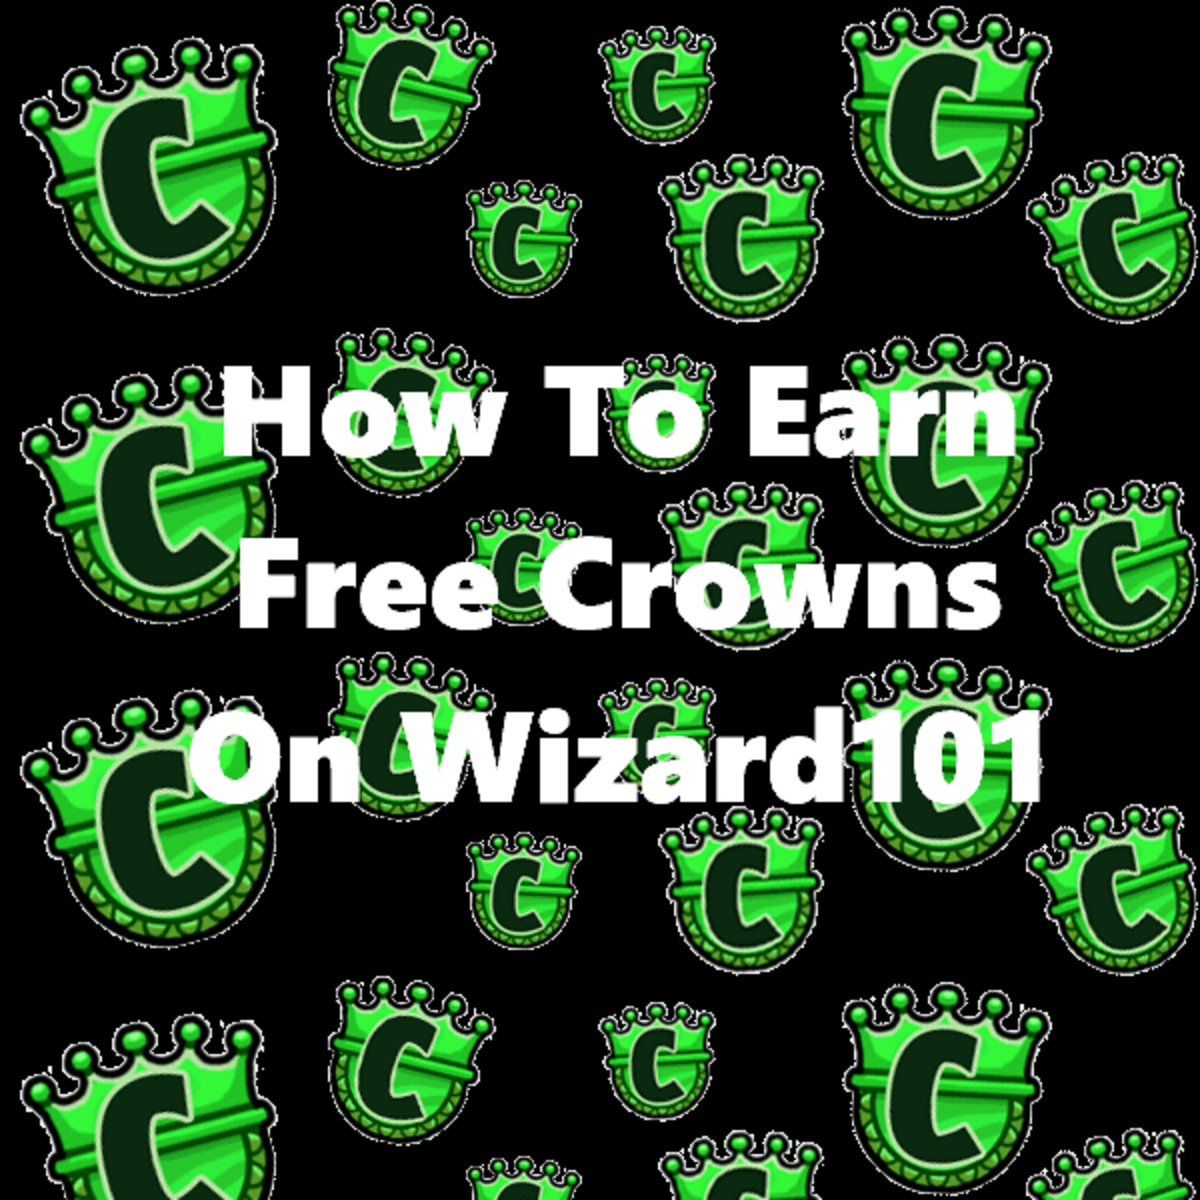 How to Earn Free Crowns in